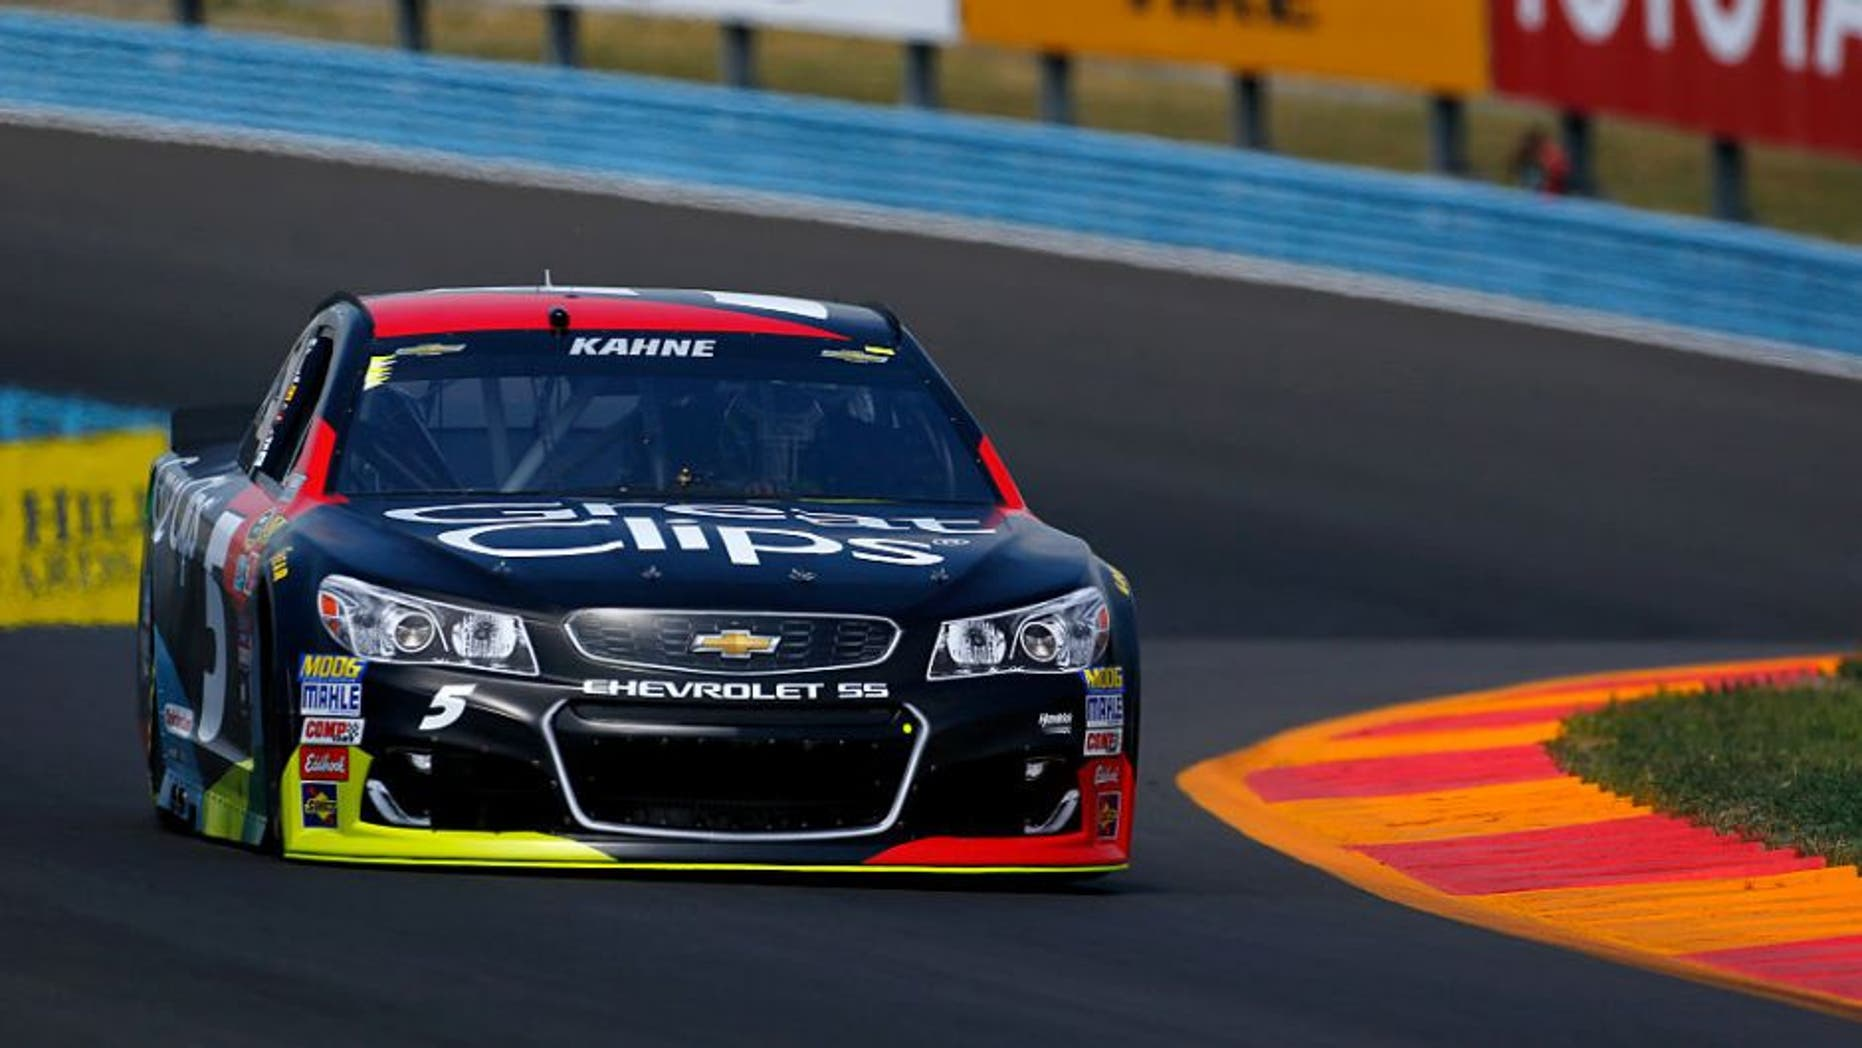 WATKINS GLEN, NY - AUGUST 05: Kasey Kahne, driver of the #5 Great Clips Chevrolet, drives during practice for the NASCAR Sprint Cup Series Cheez-It 355 at Watkins Glen International on August 5, 2016 in Watkins Glen, New York. (Photo by Jonathan Ferrey/NASCAR via Getty Images)